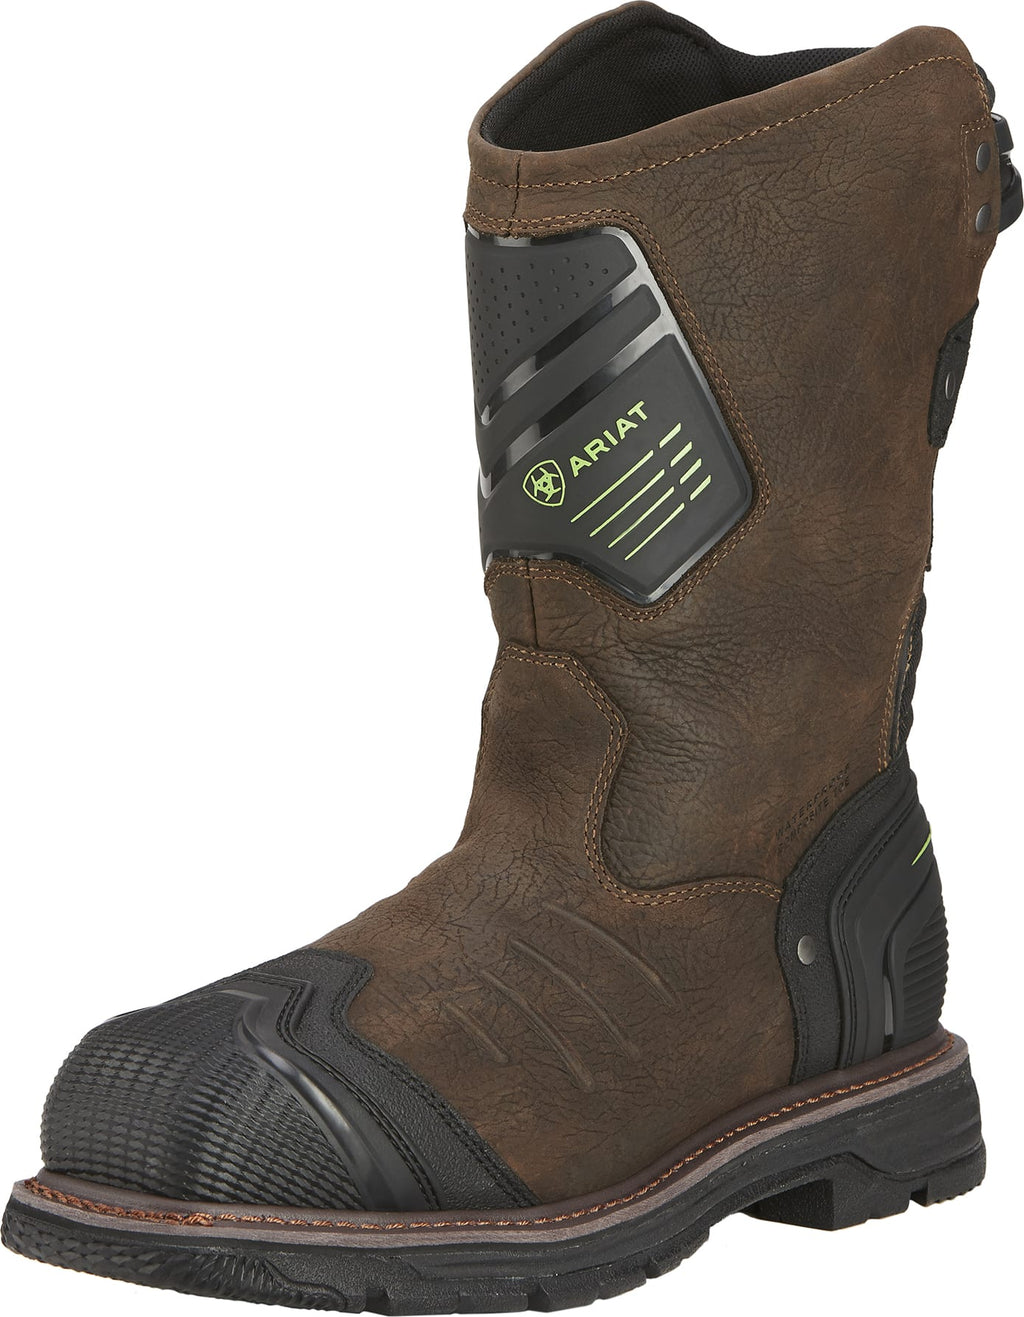 Ariat Catalyst VX H2O Comp Toe